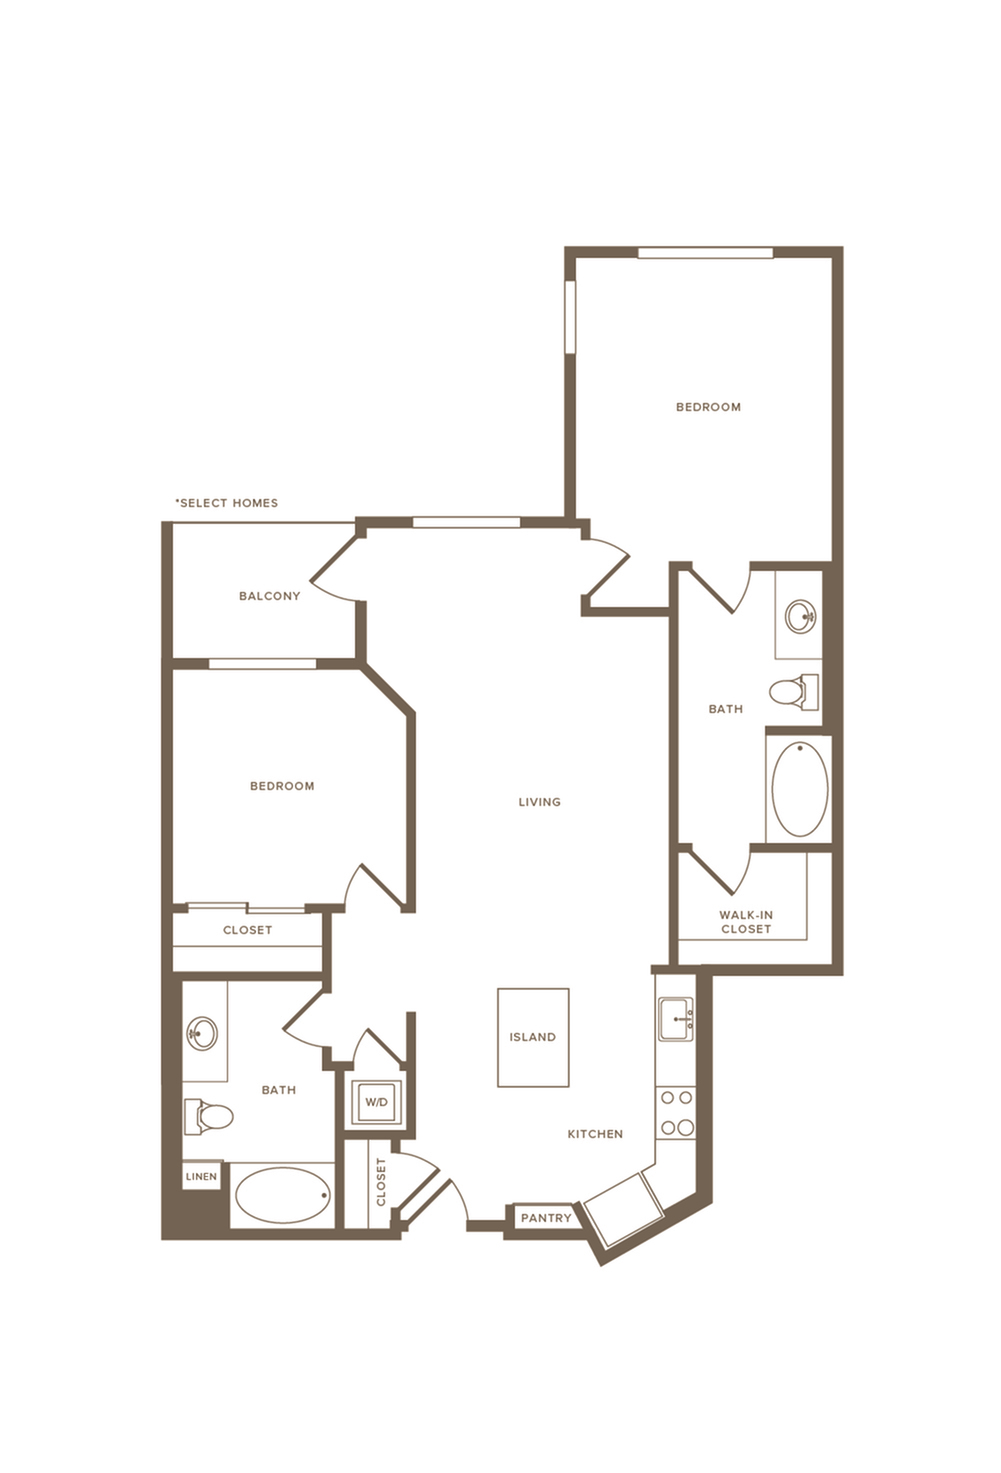 1093 square foot two bedroom two bath floor plan